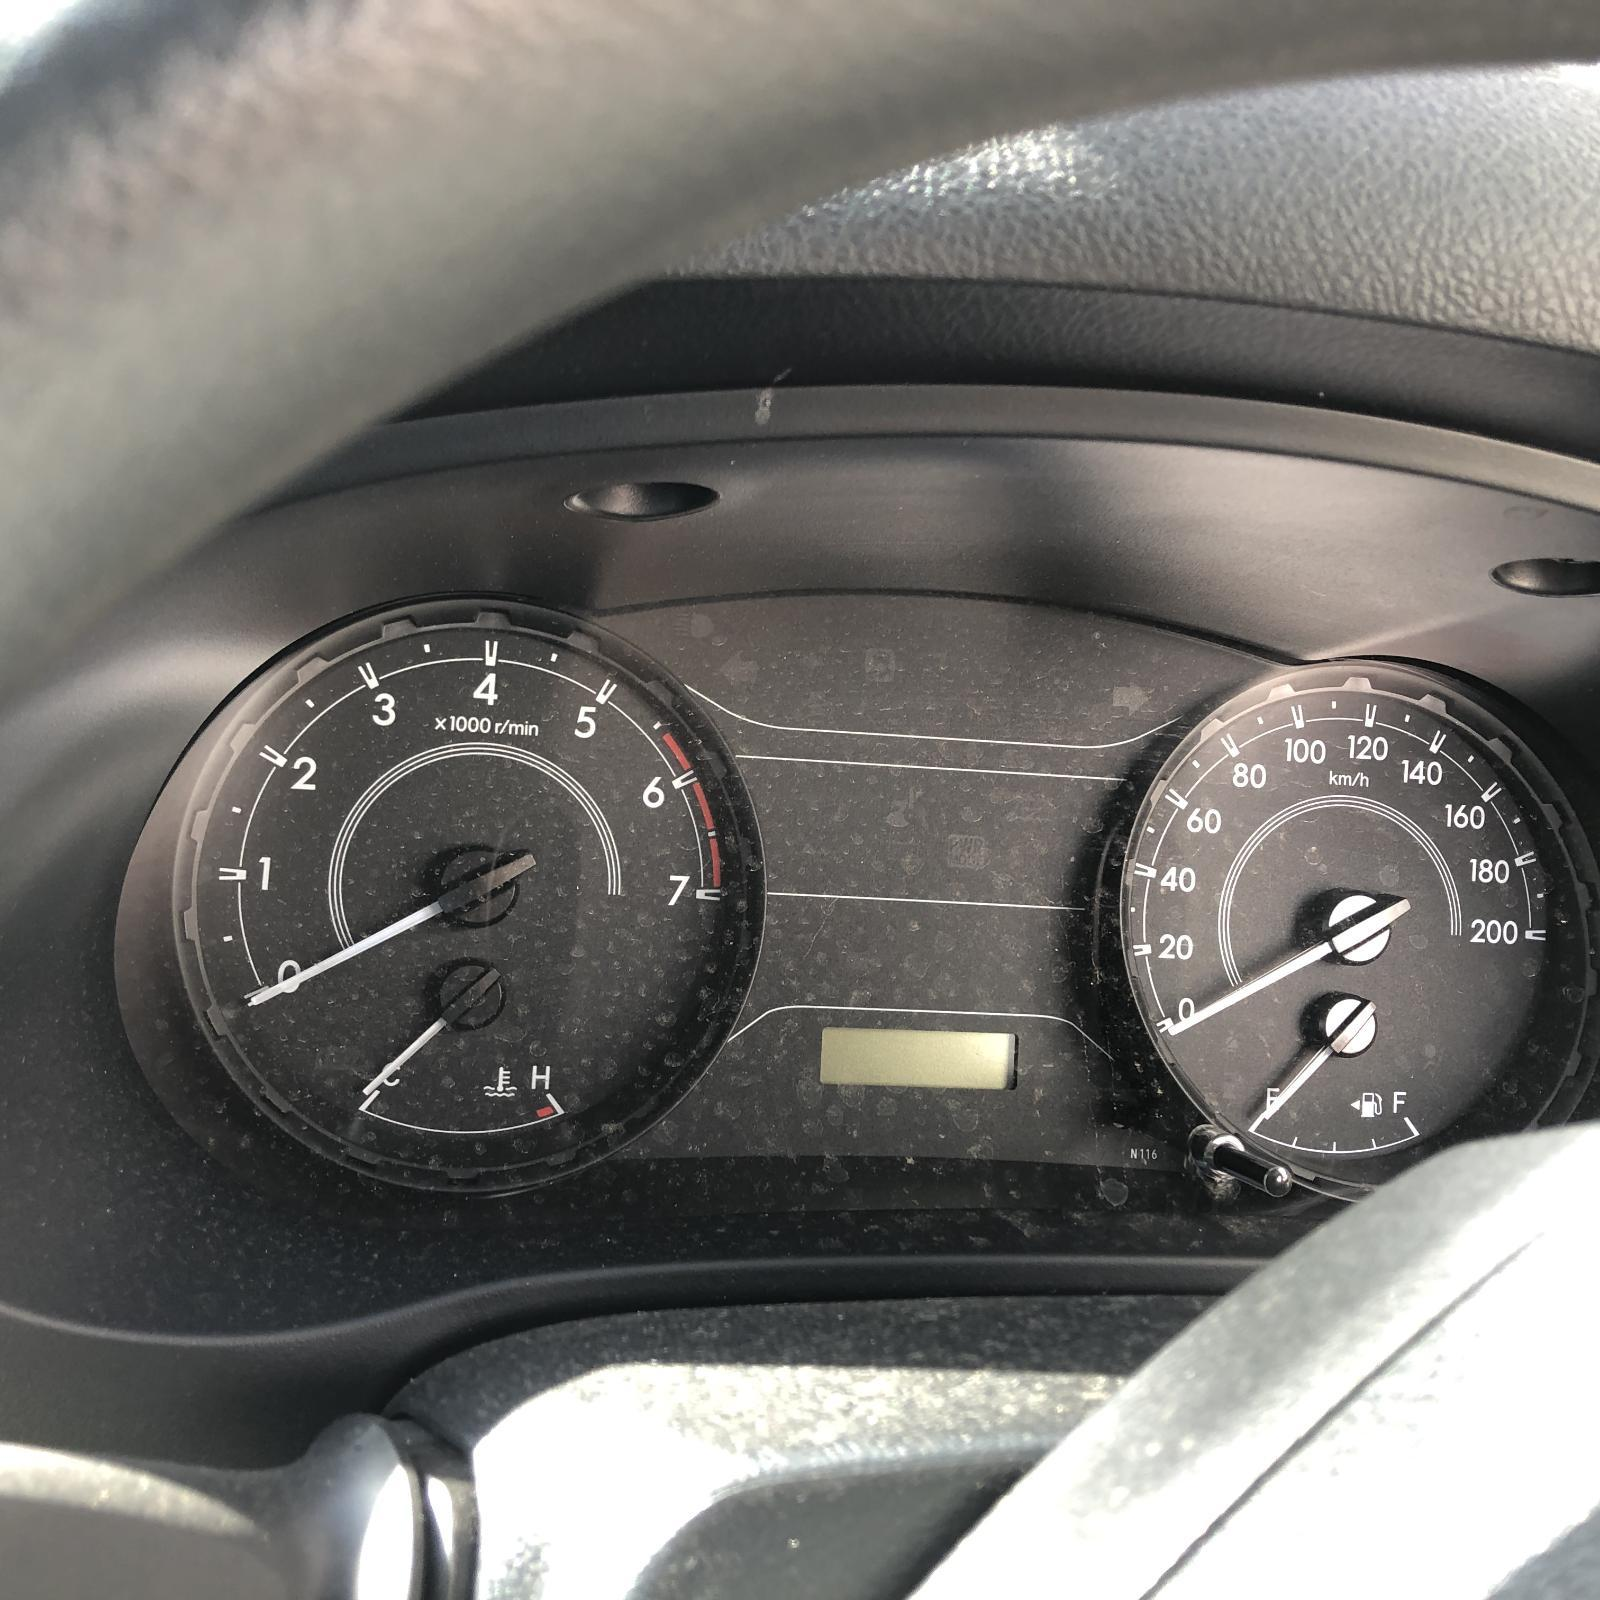 TOYOTA HILUX, Instrument Cluster, INSTRUMENT CLUSTER, PETROL, AUTO T/M, WORKMATE, 09/15-